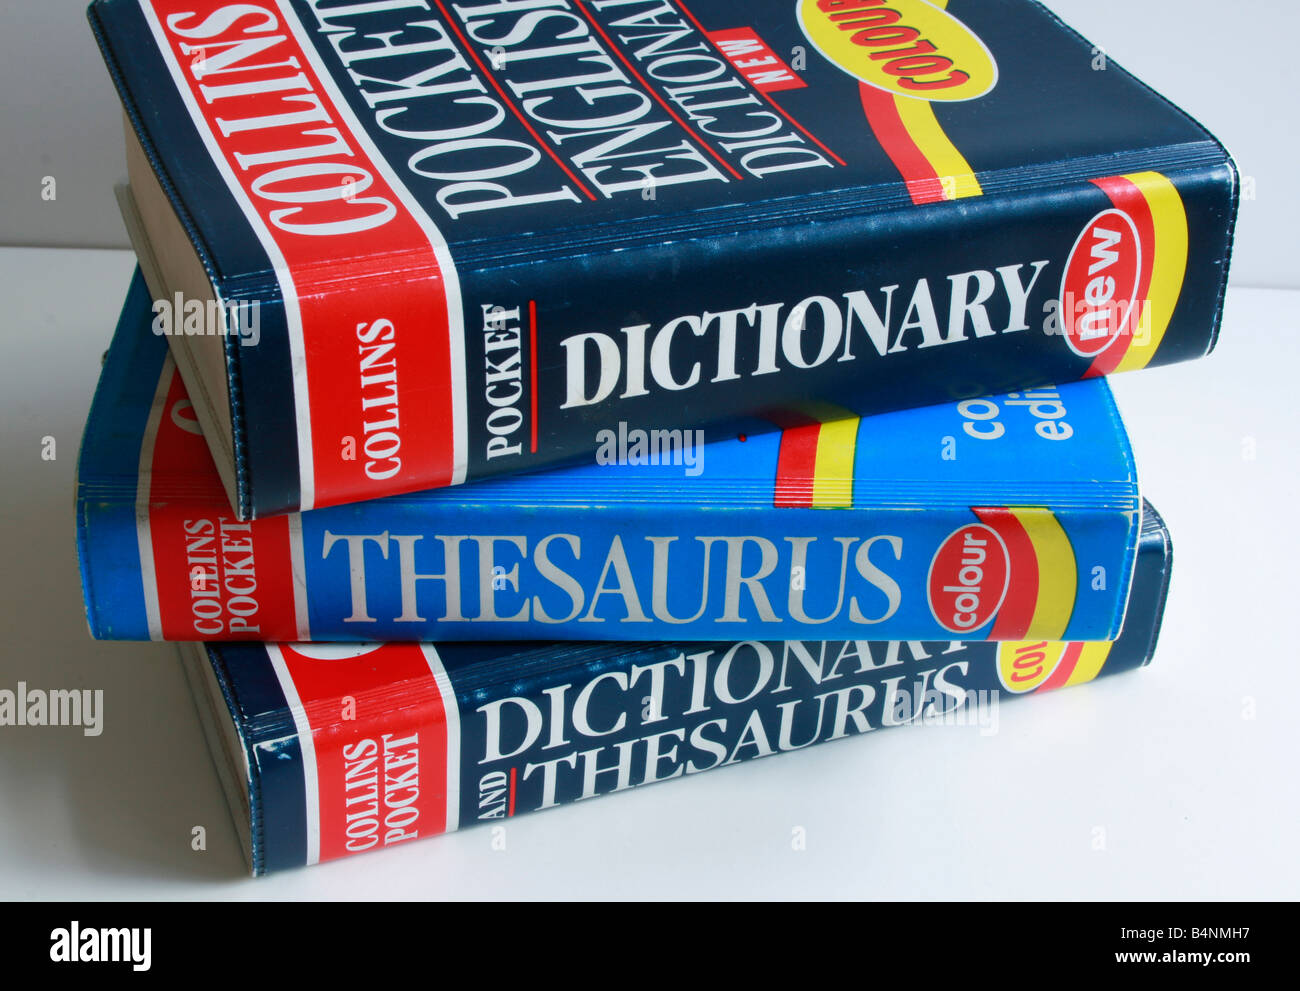 Pocket sized dictionary, and thesaurus' are piled one on top